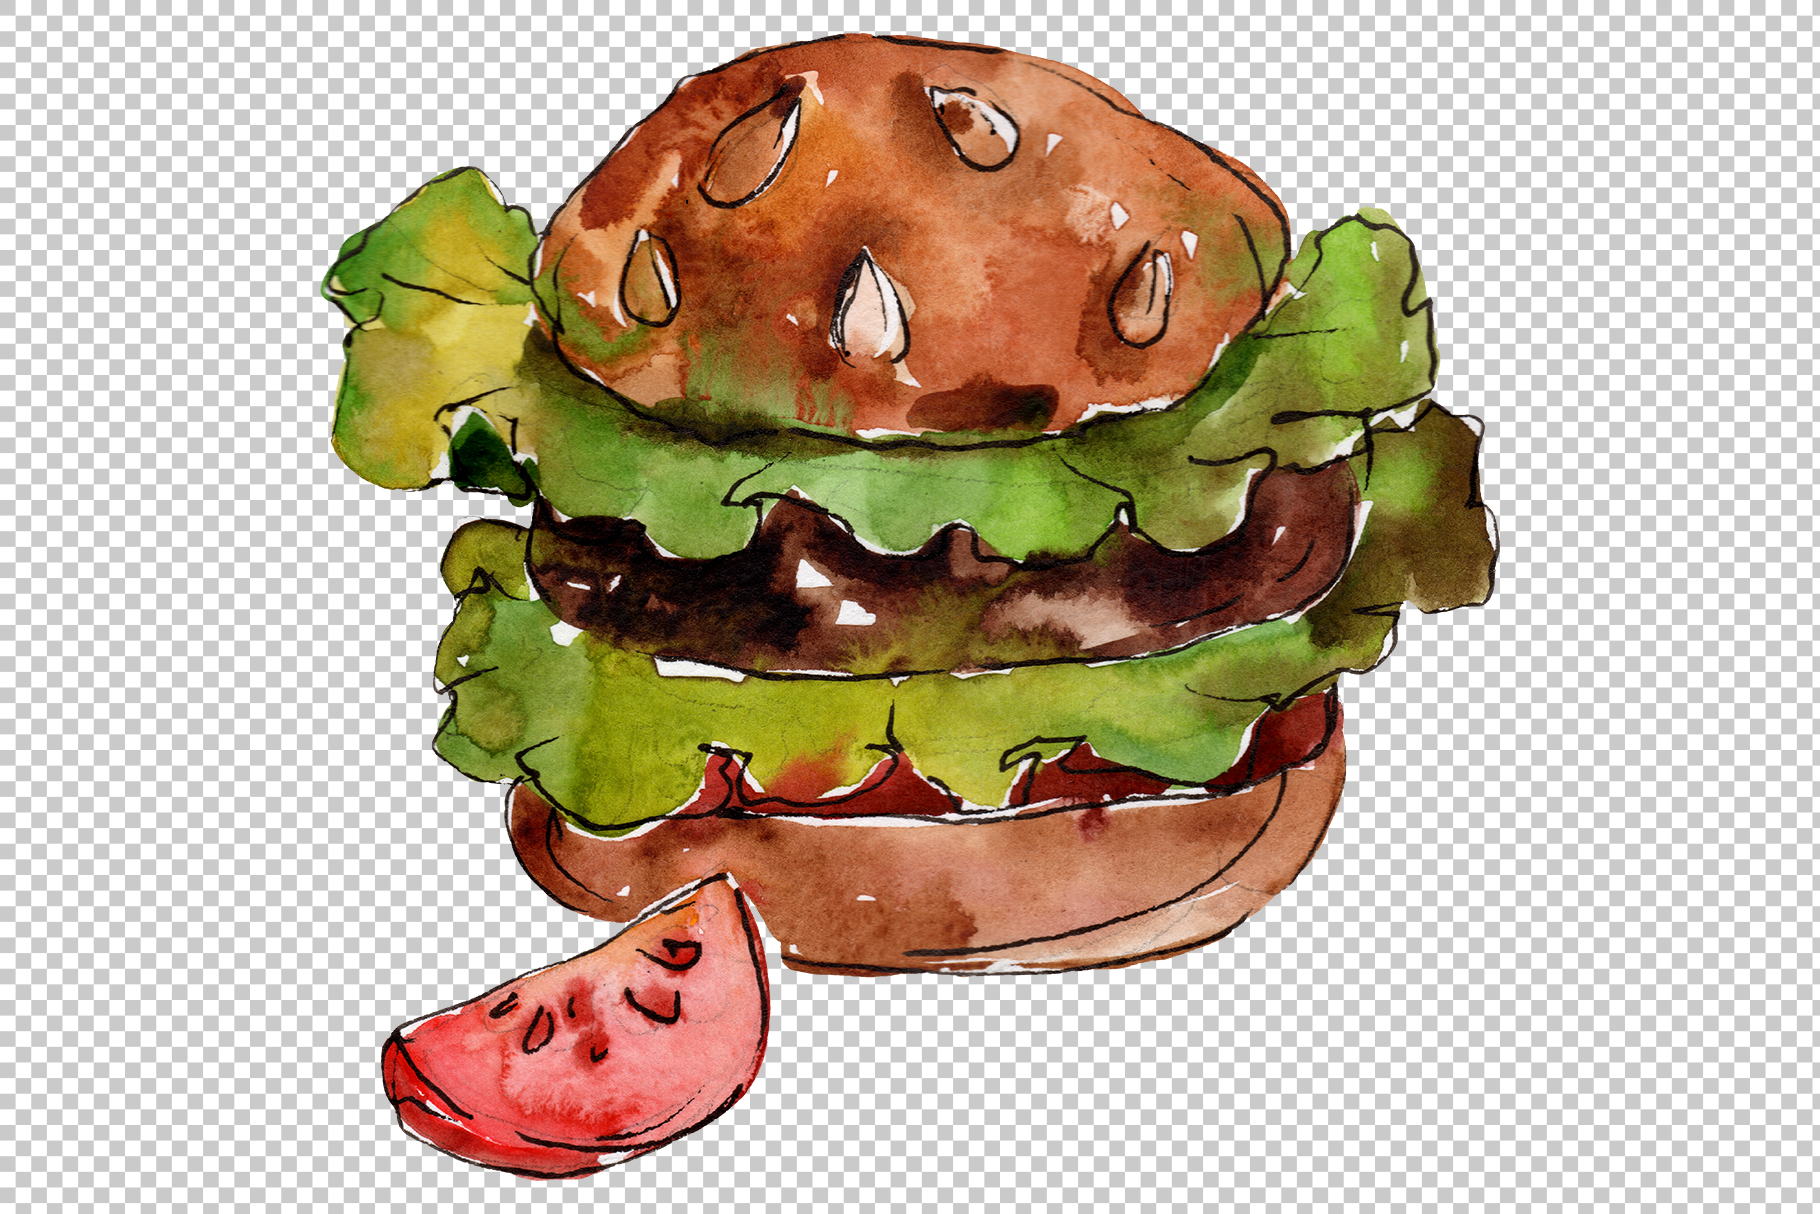 Hamburger for gentleman watercolor png example image 5